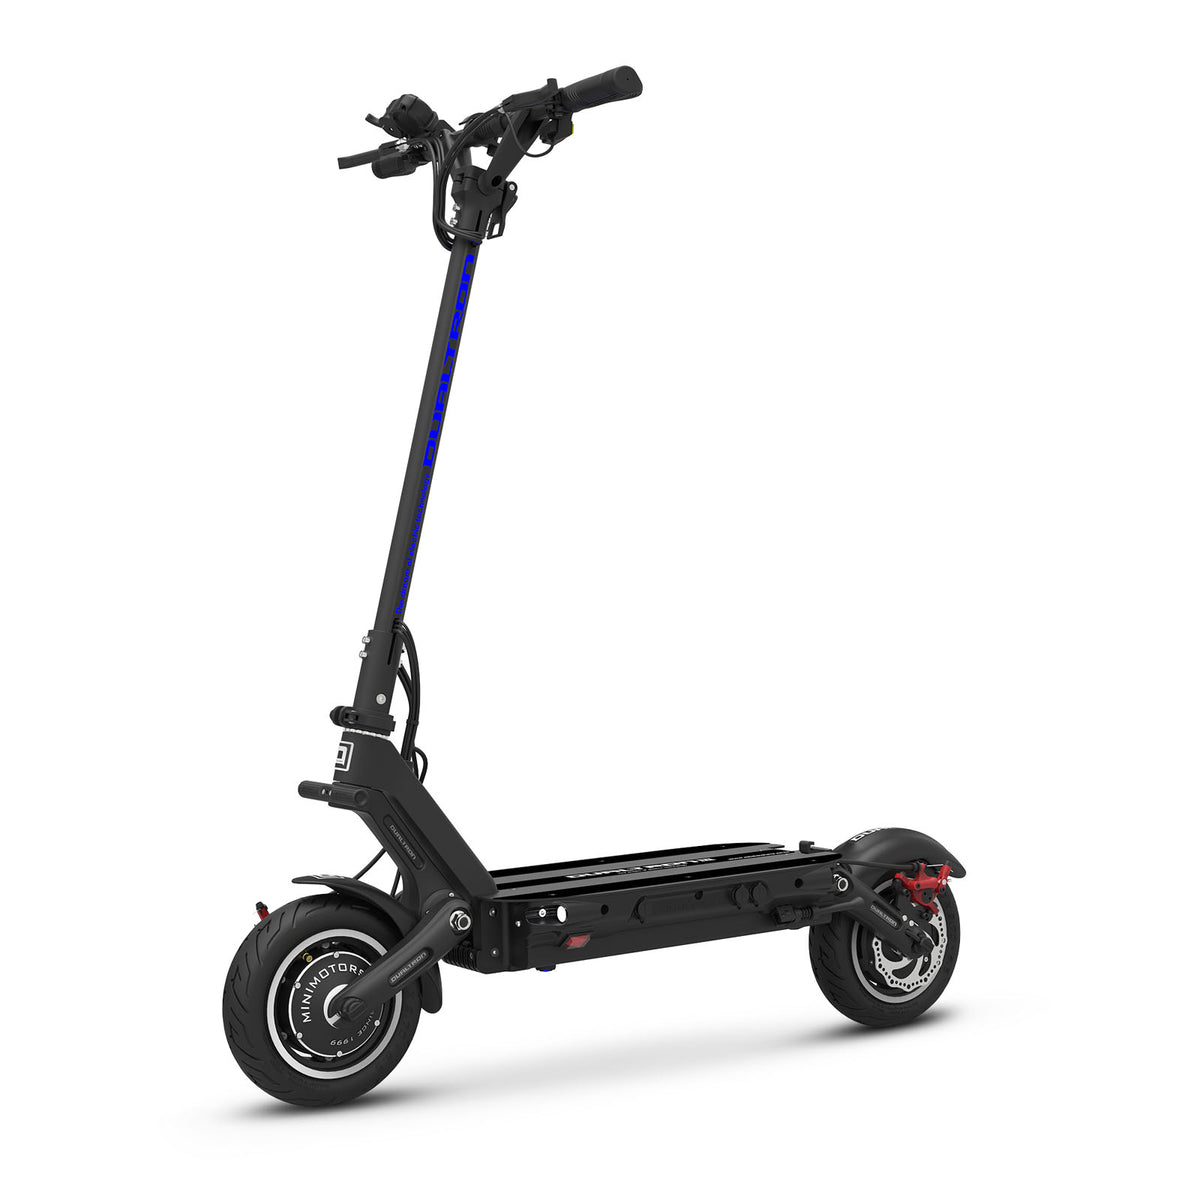 Dualtron 3 Electric Scooter Profile